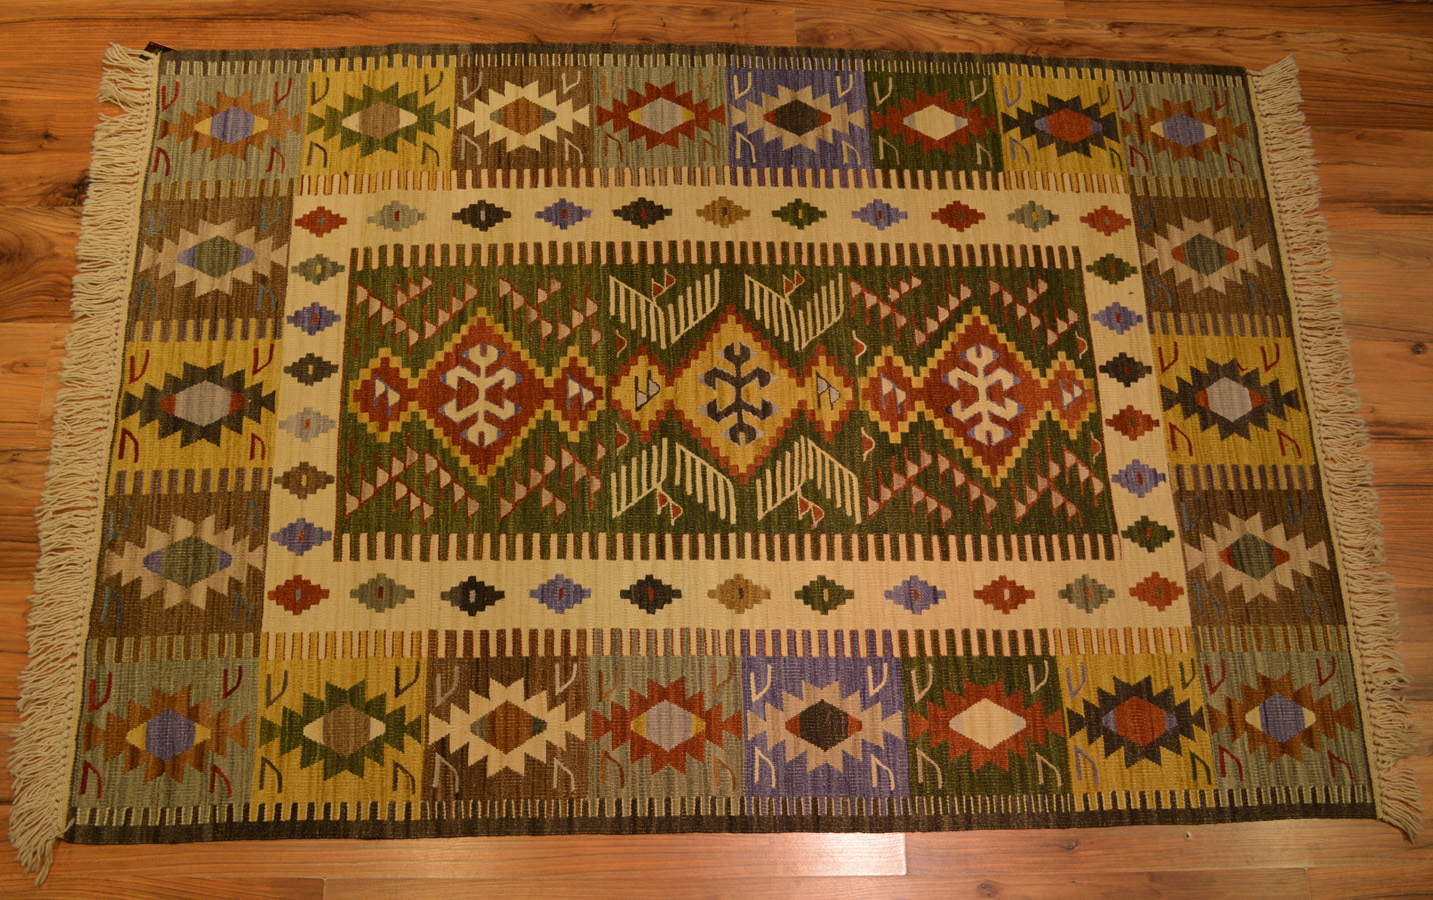 Carpet and Kilim Hilmi's Rug Strore